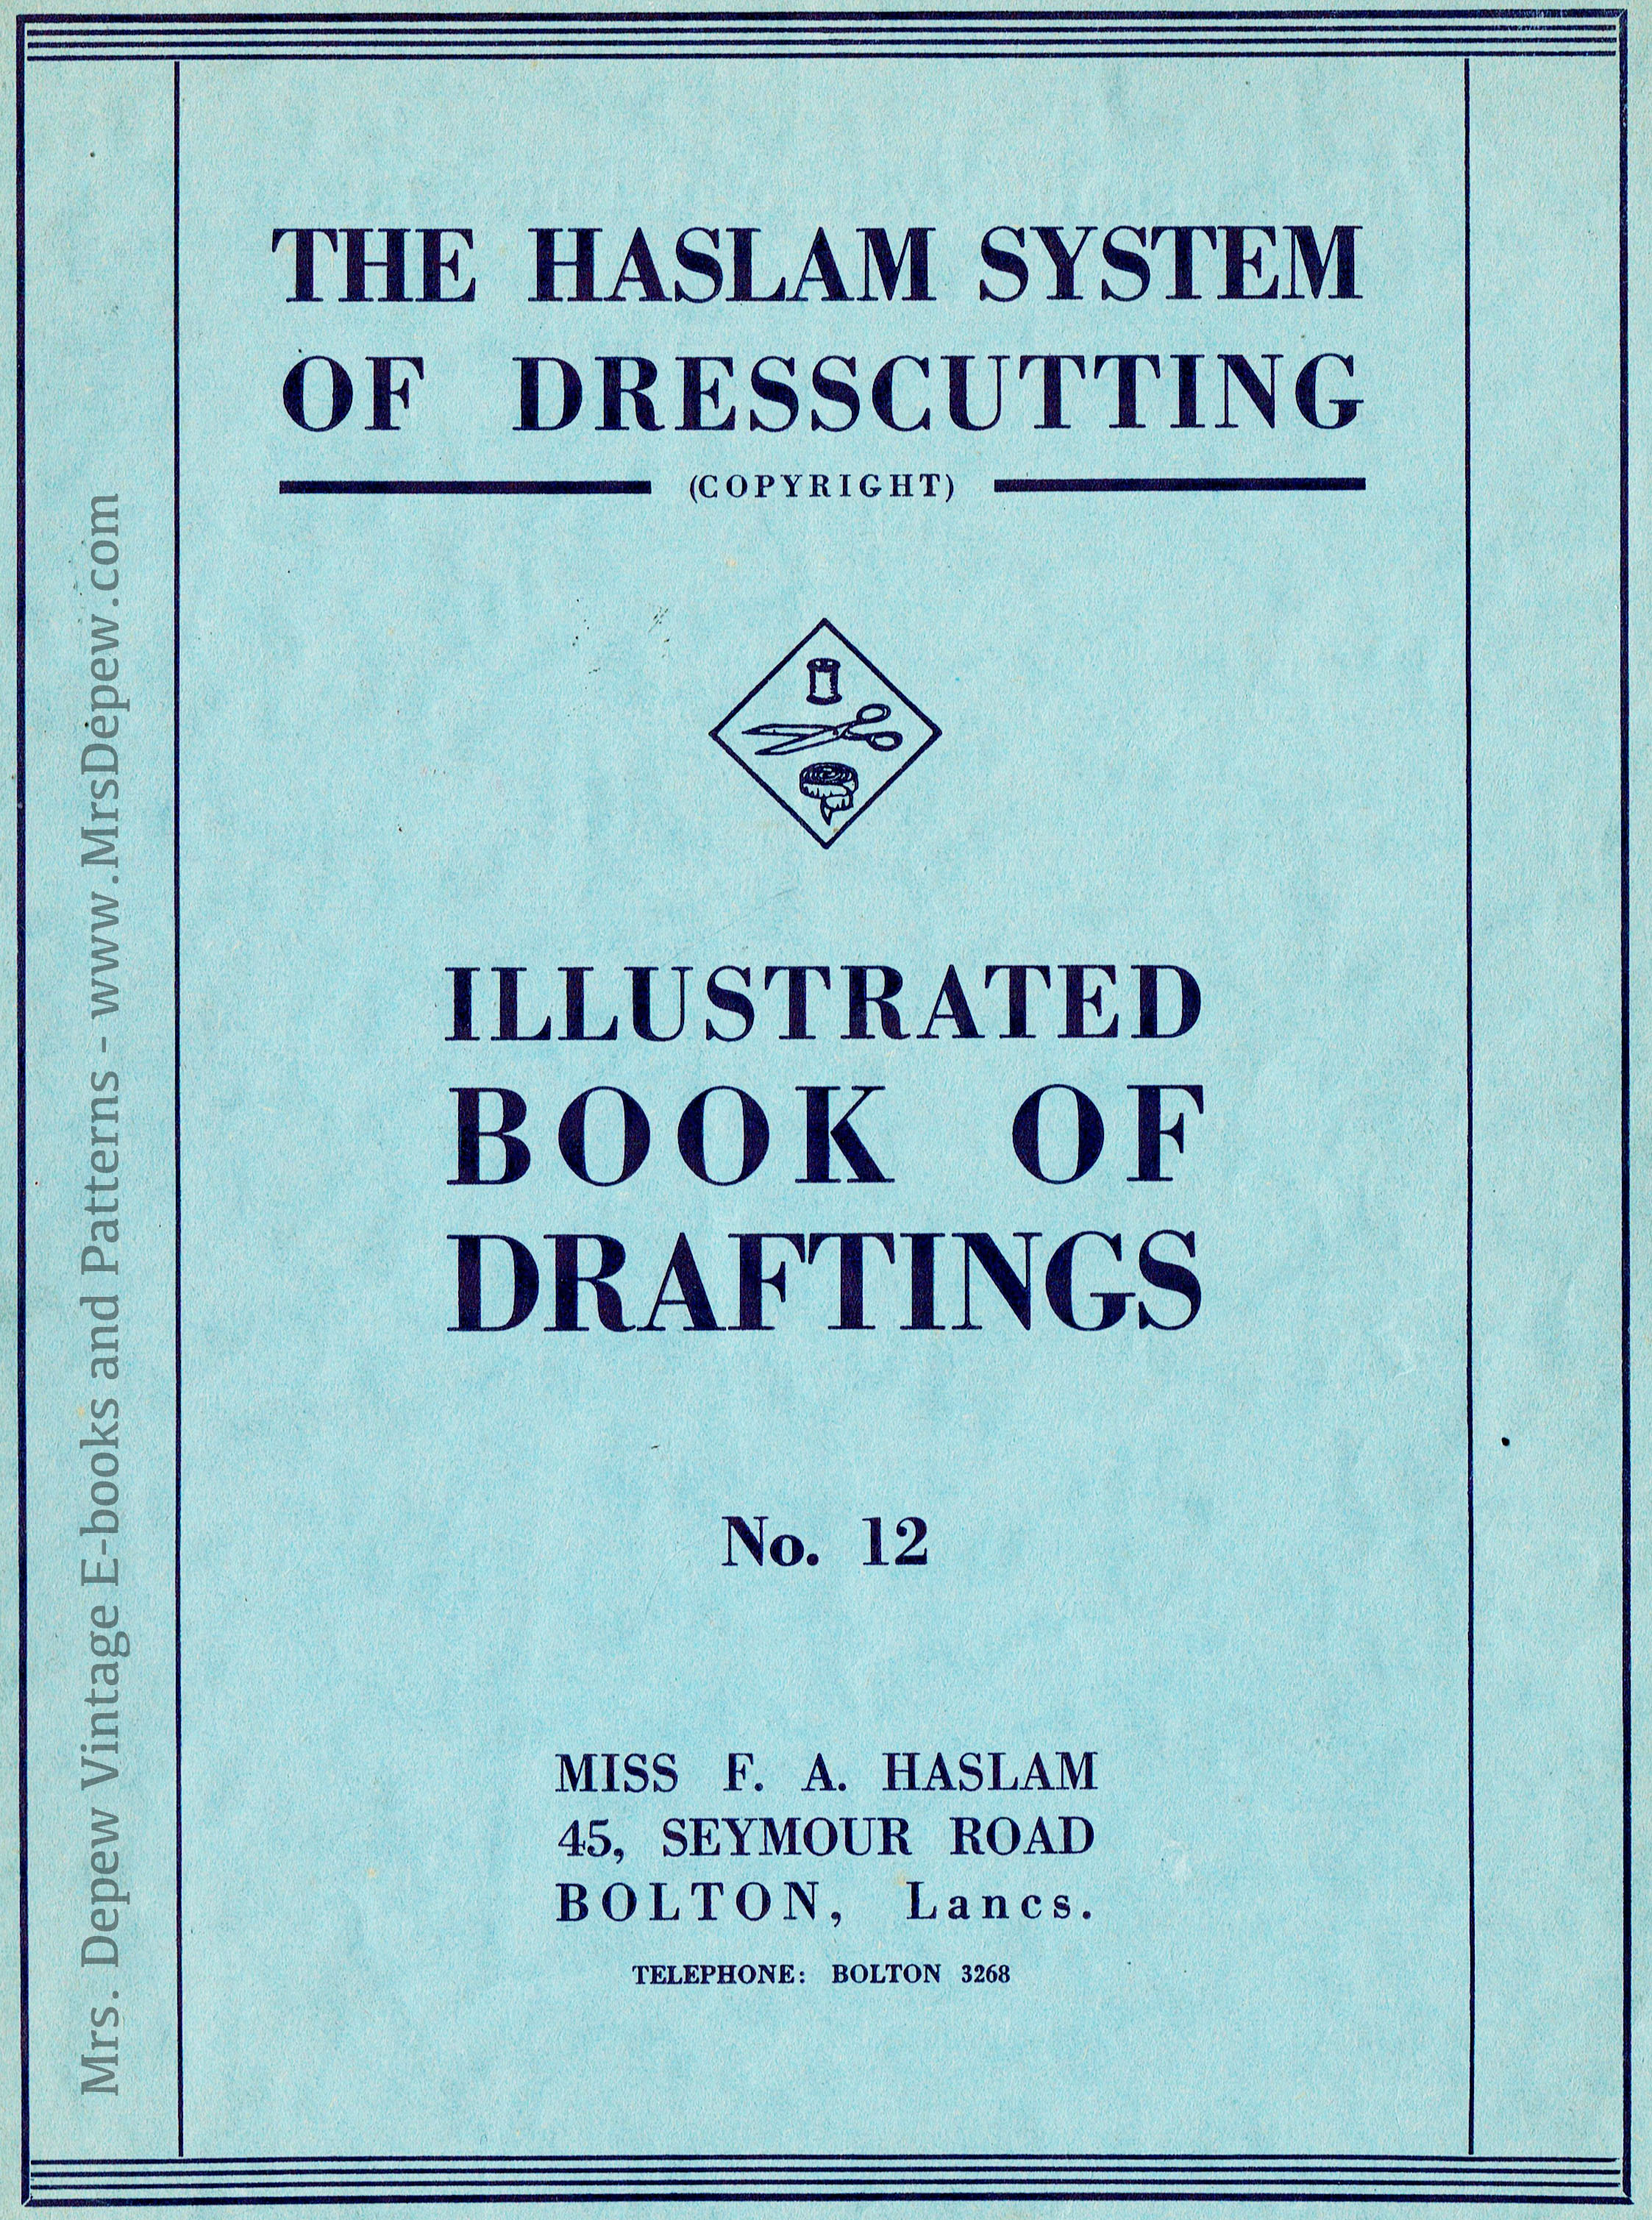 Haslam System of Dresscutting Book of Draftings No. 12